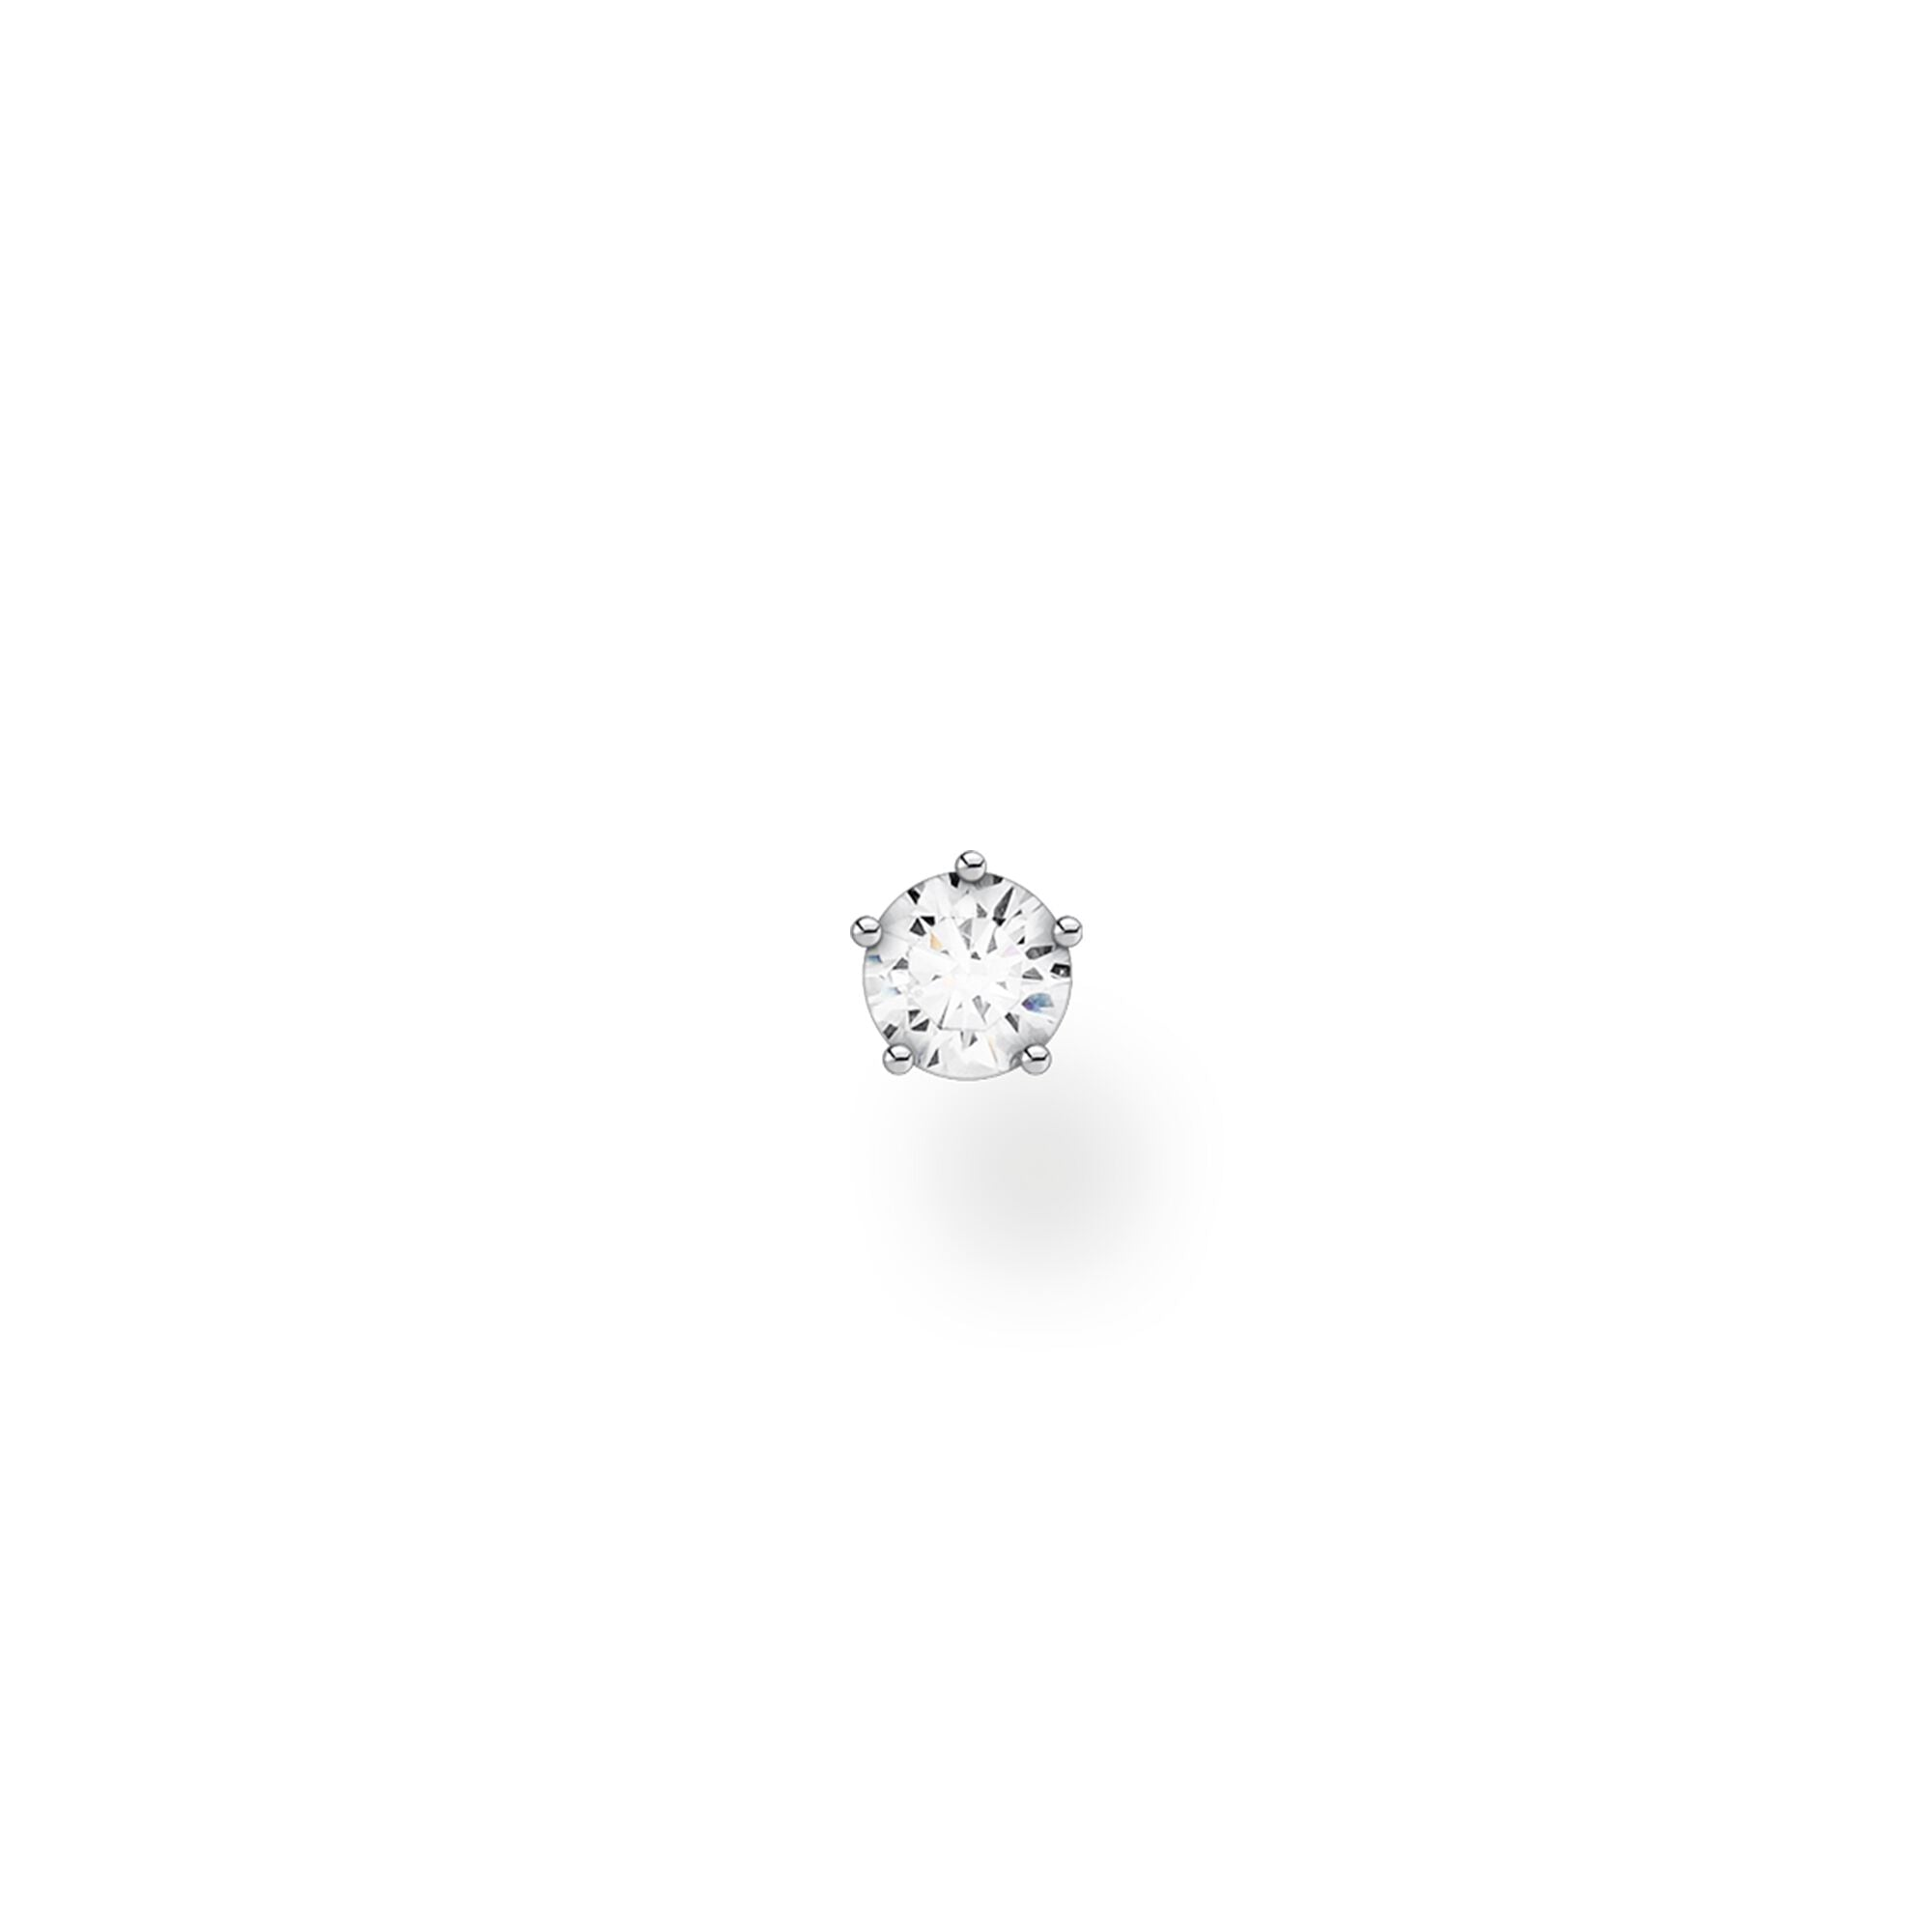 STERLING SILVER CHARMING COLLECTION SMALL CZ STUD EARRING SINGLE